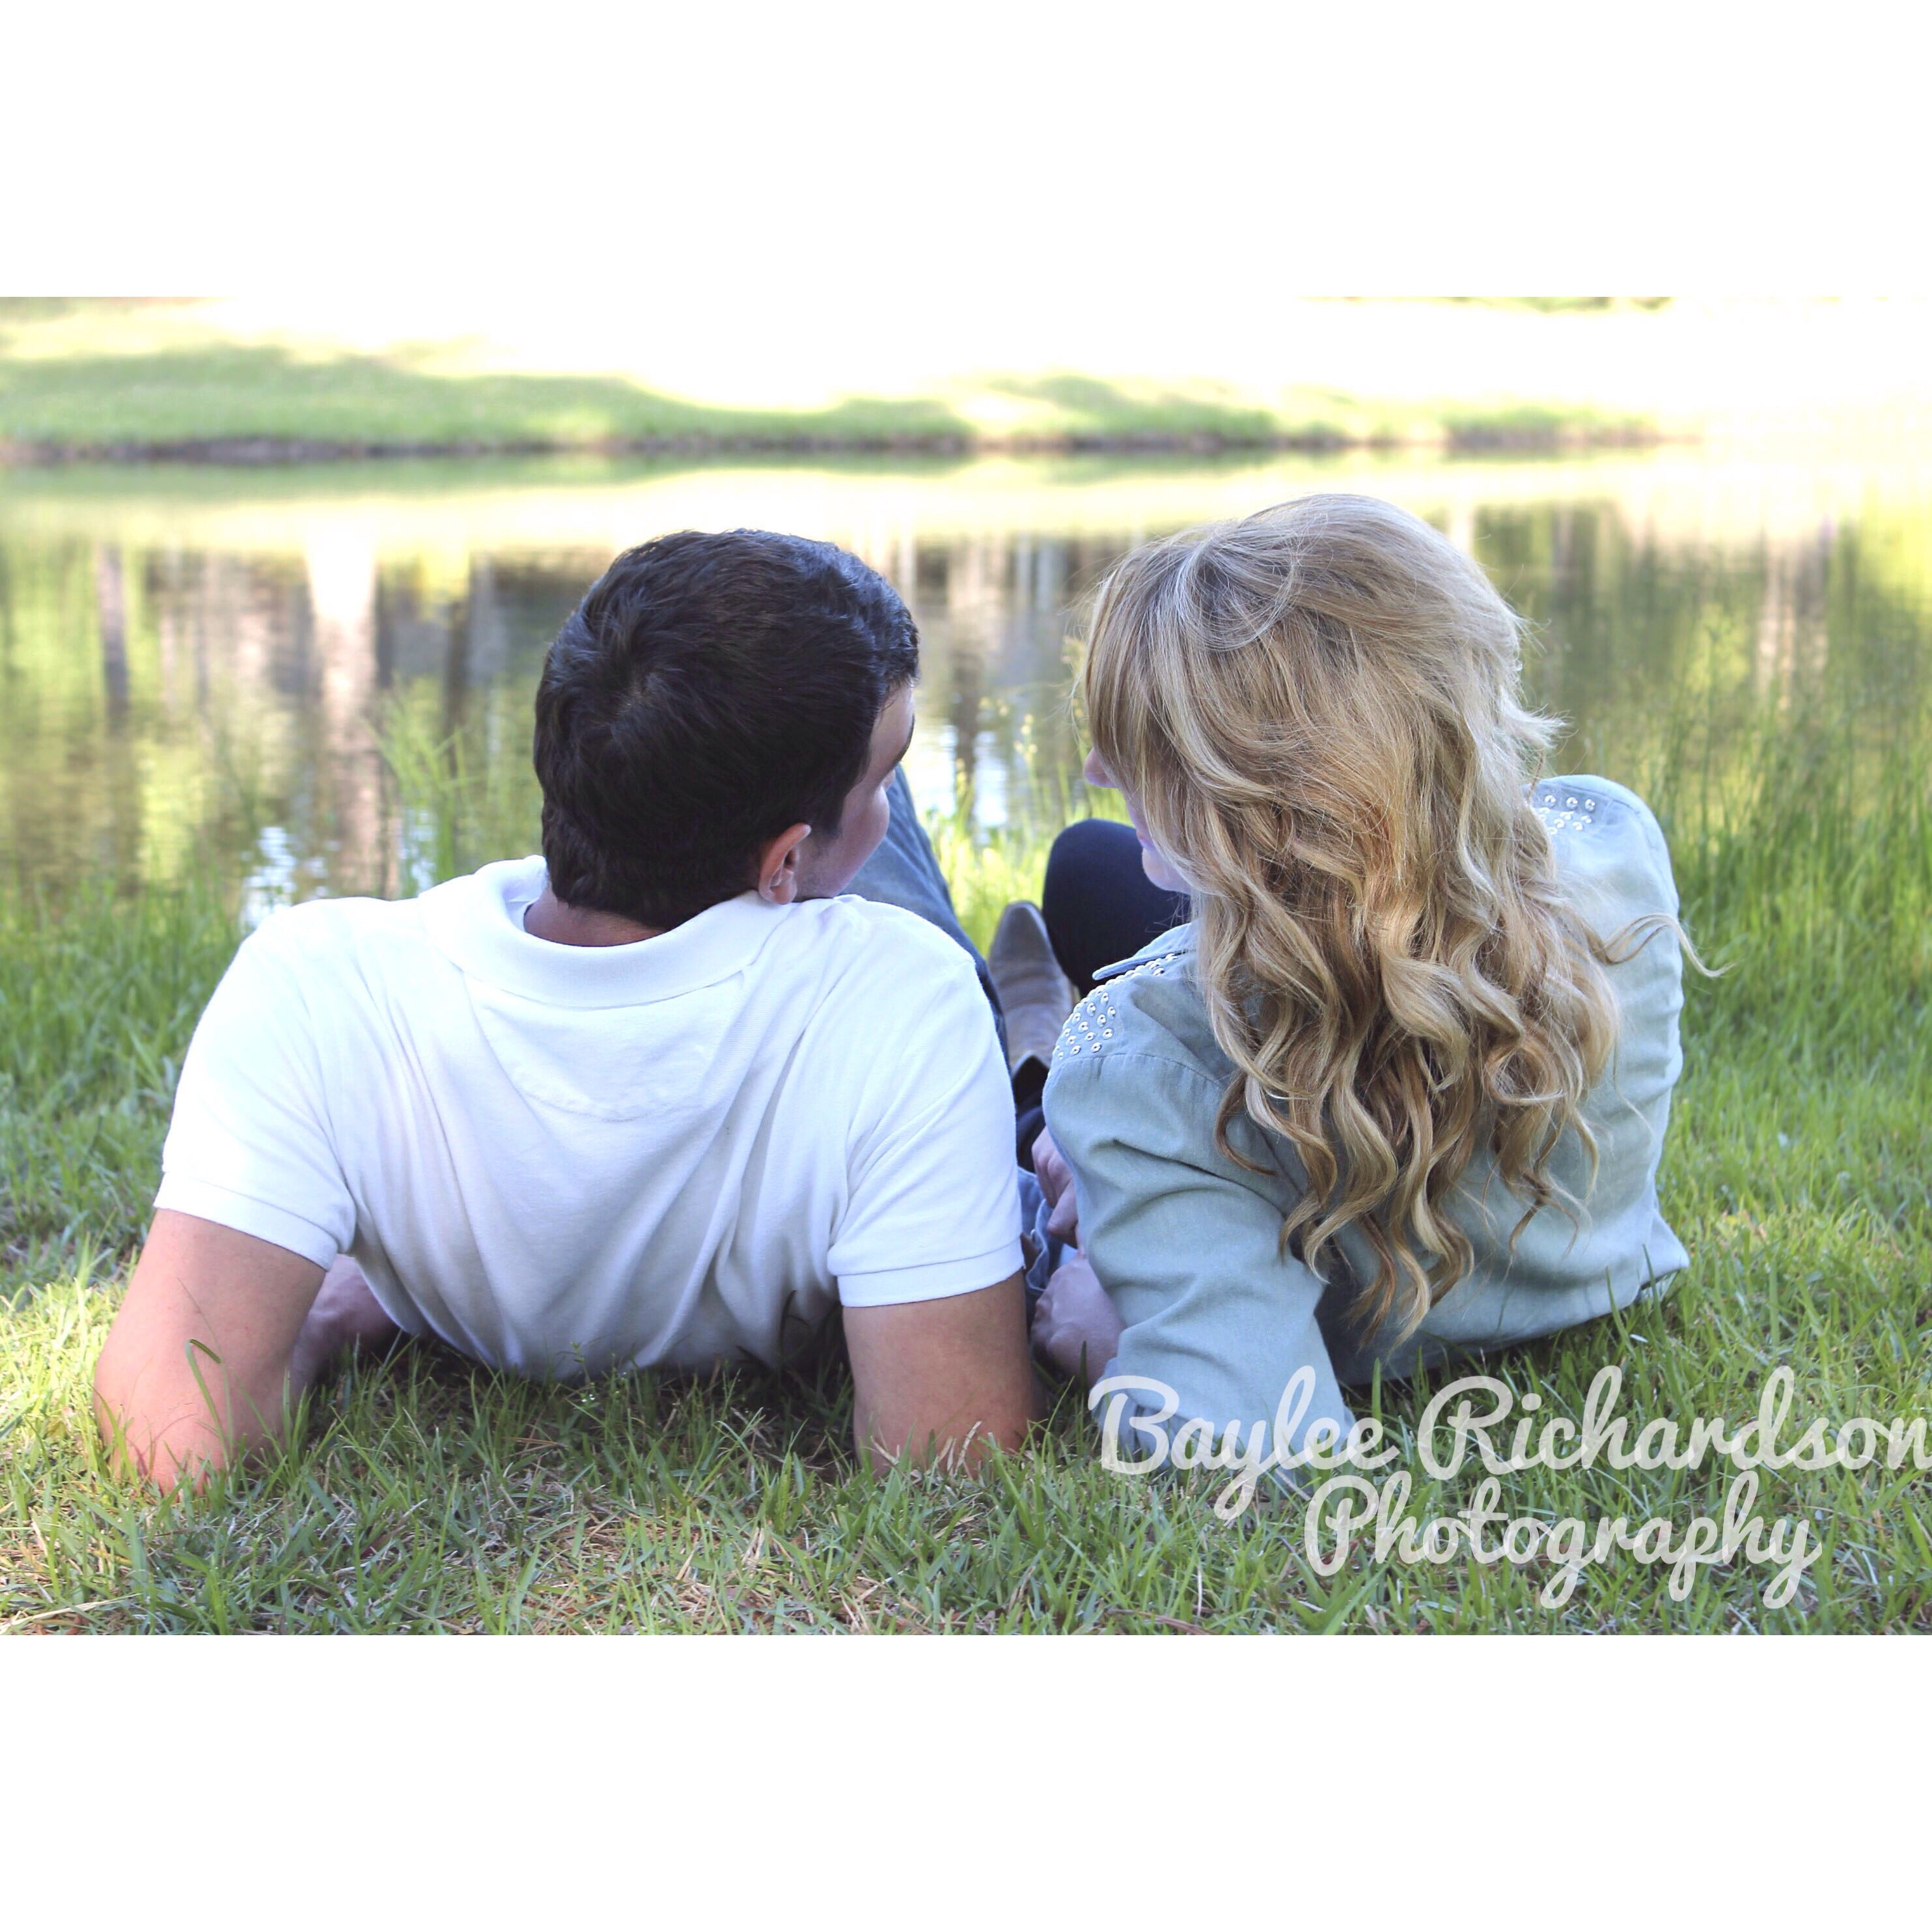 Our engagement pictures ❤️